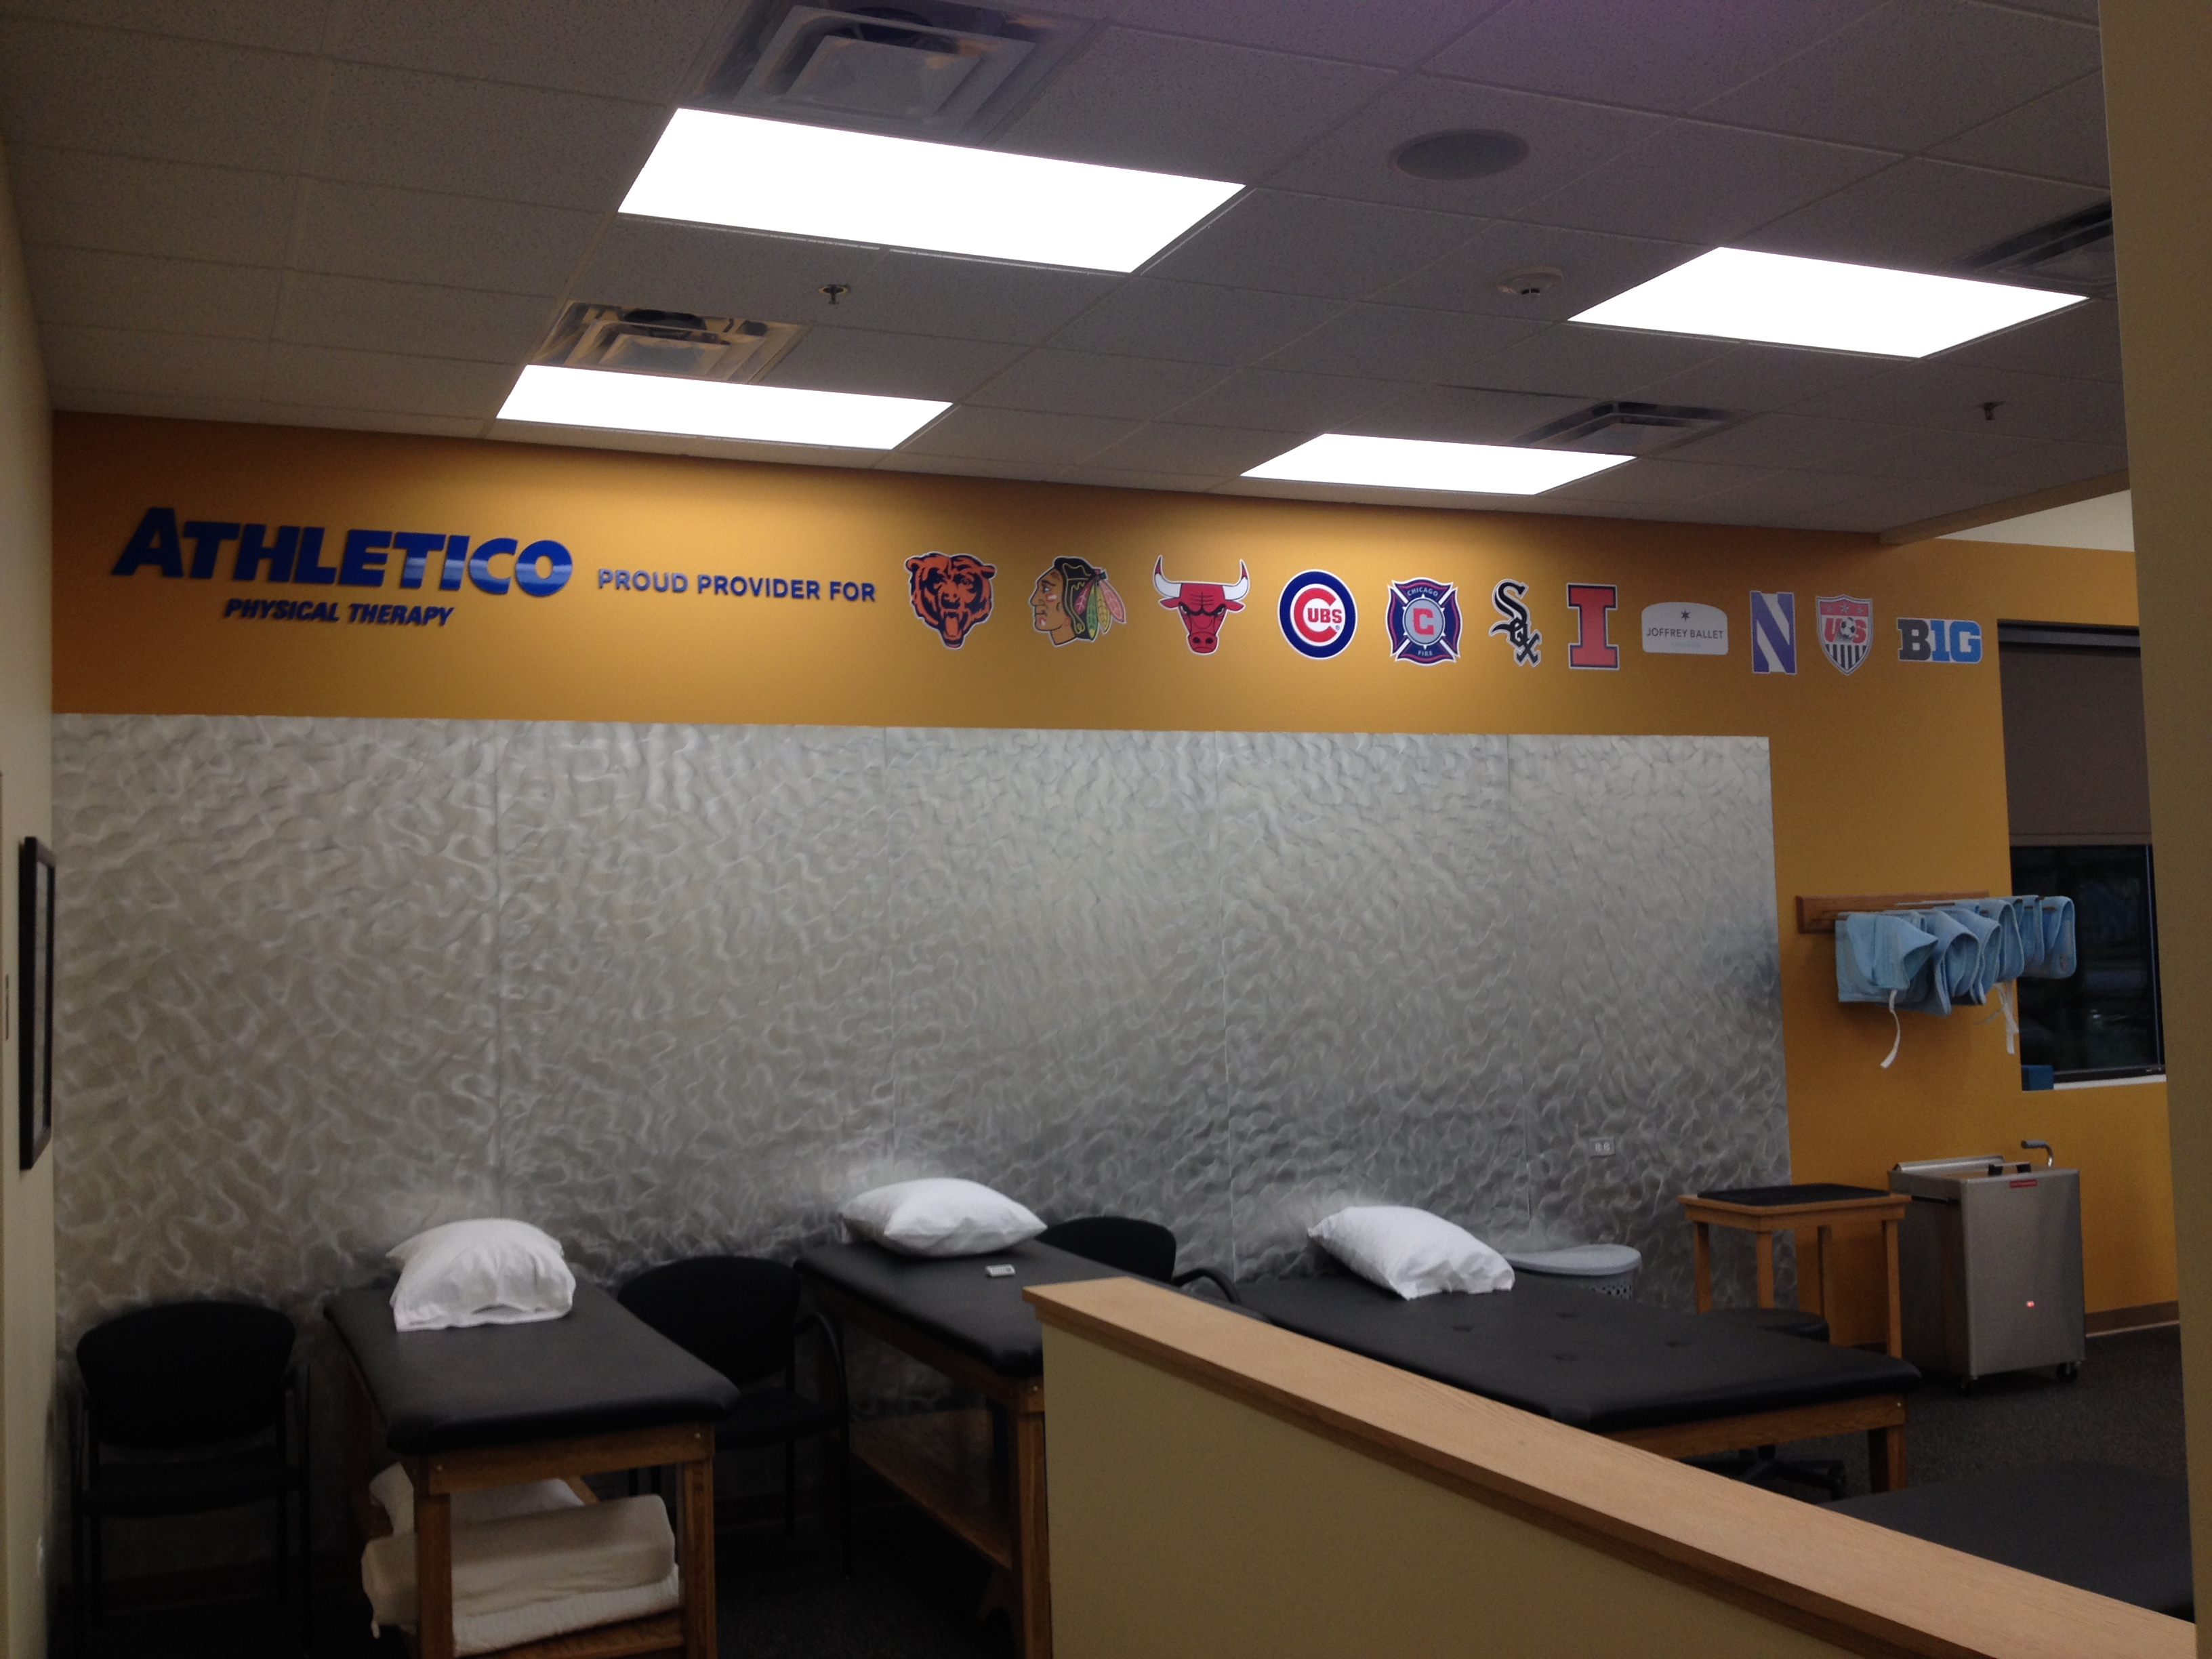 Glenview california physical therapy - Athletico West Chicago Dupage Interior